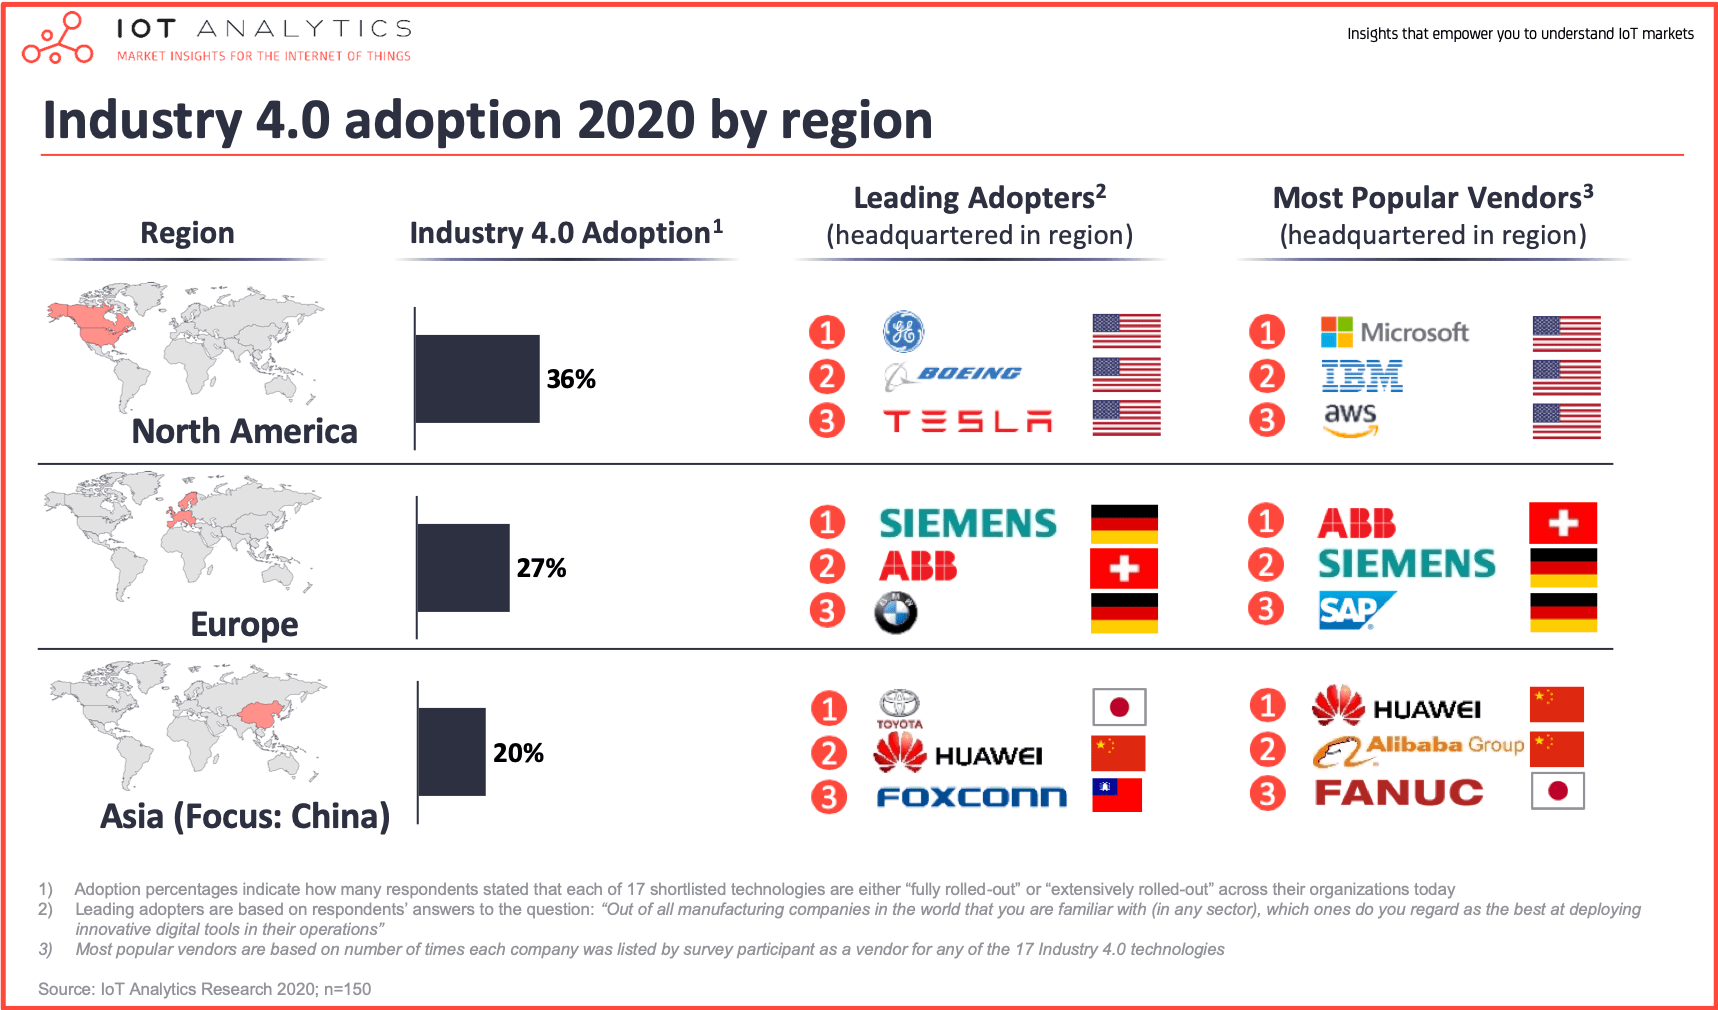 Industry 4.0 adoption 2020 by region